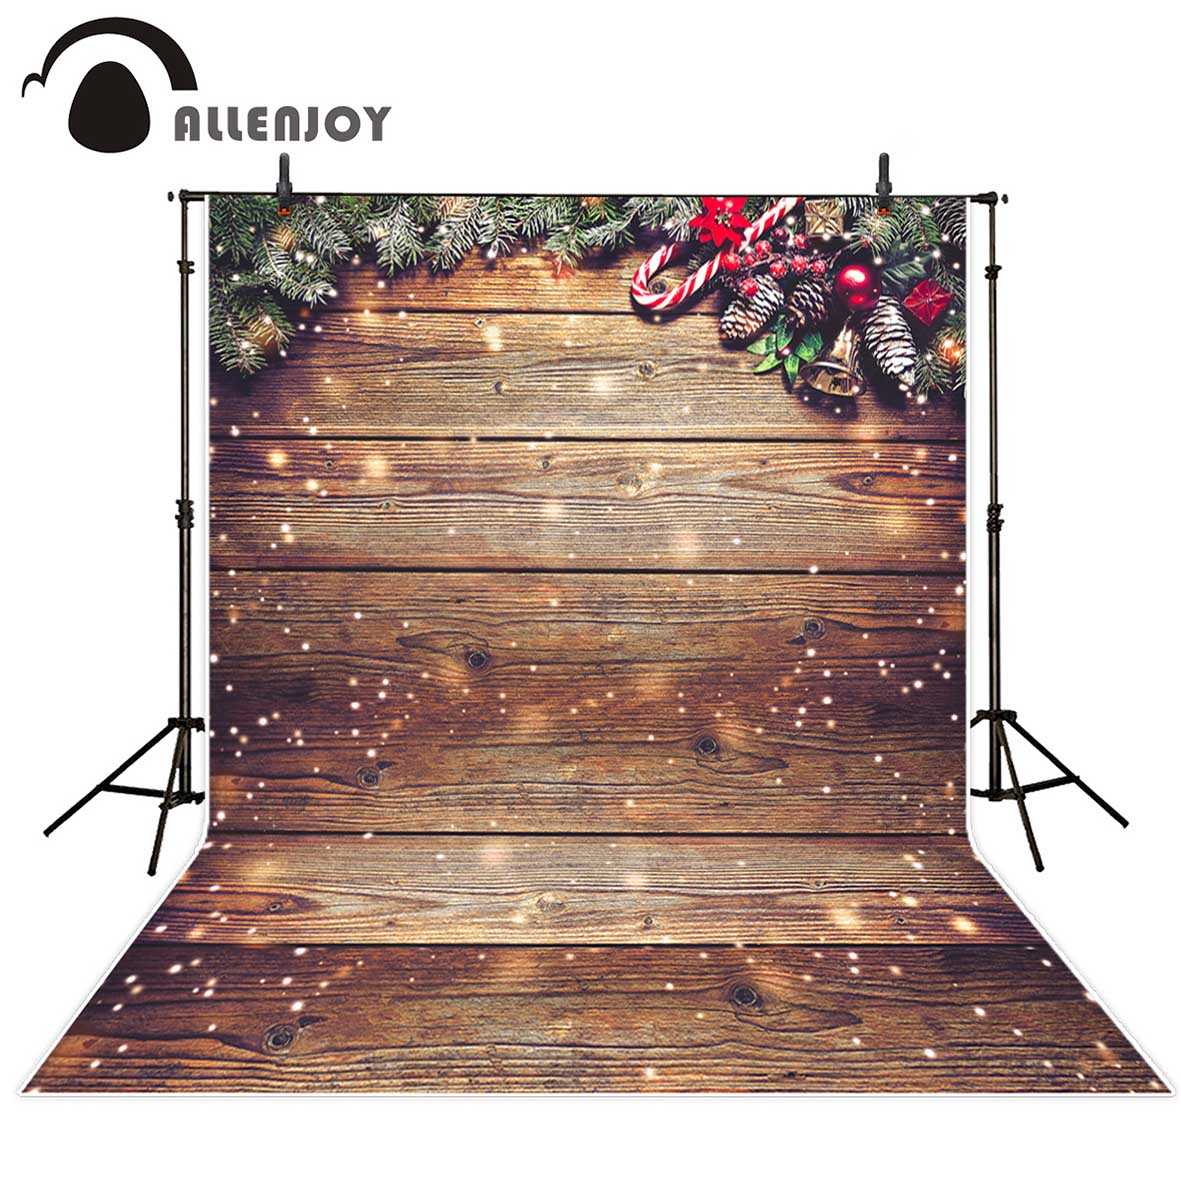 Allenjoy new photography background Christmas bokeh wood crutch leaves backdrop photocall photographic professional allenjoy christmas photography backdrop wooden fireplace xmas sock gift children s photocall photographic customize festive